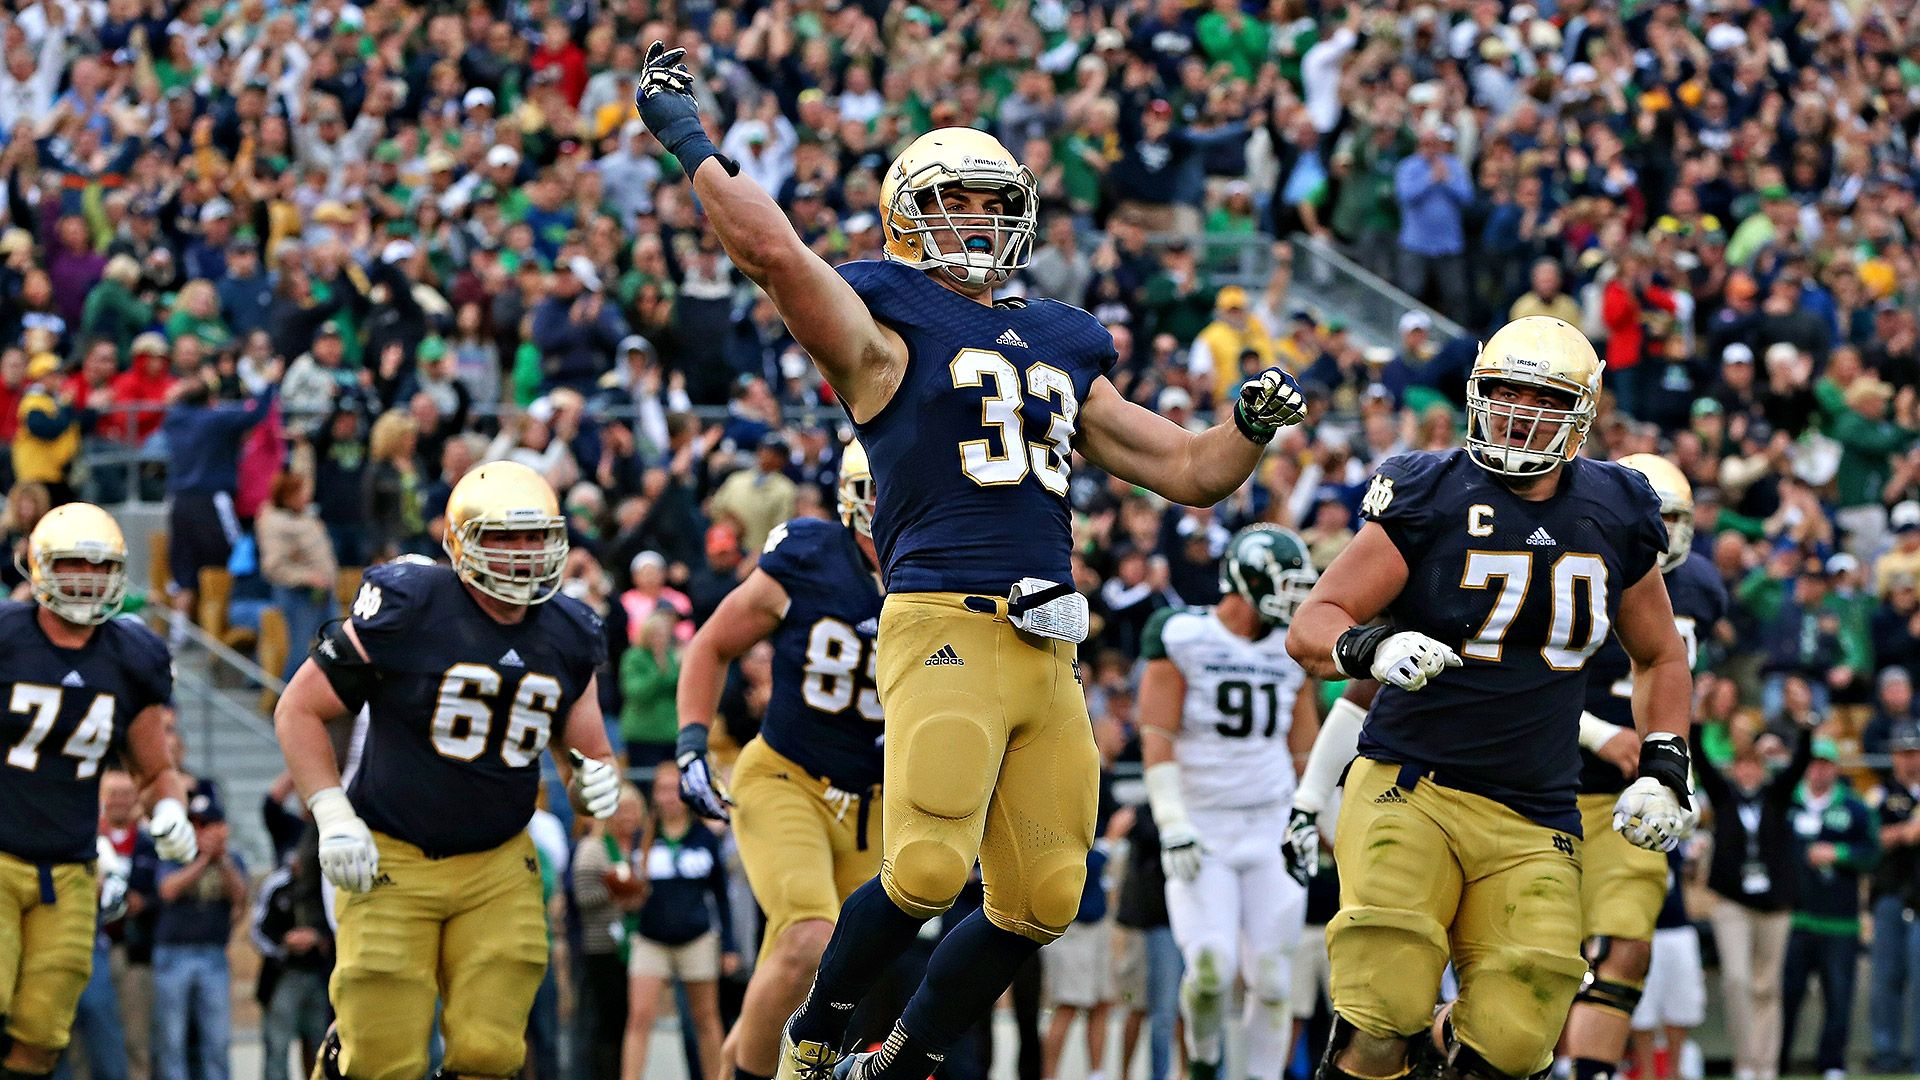 Notre Dame Fighting Irish replacements for NFL early entrants - Notre Dame Fighting Irish- ESPN